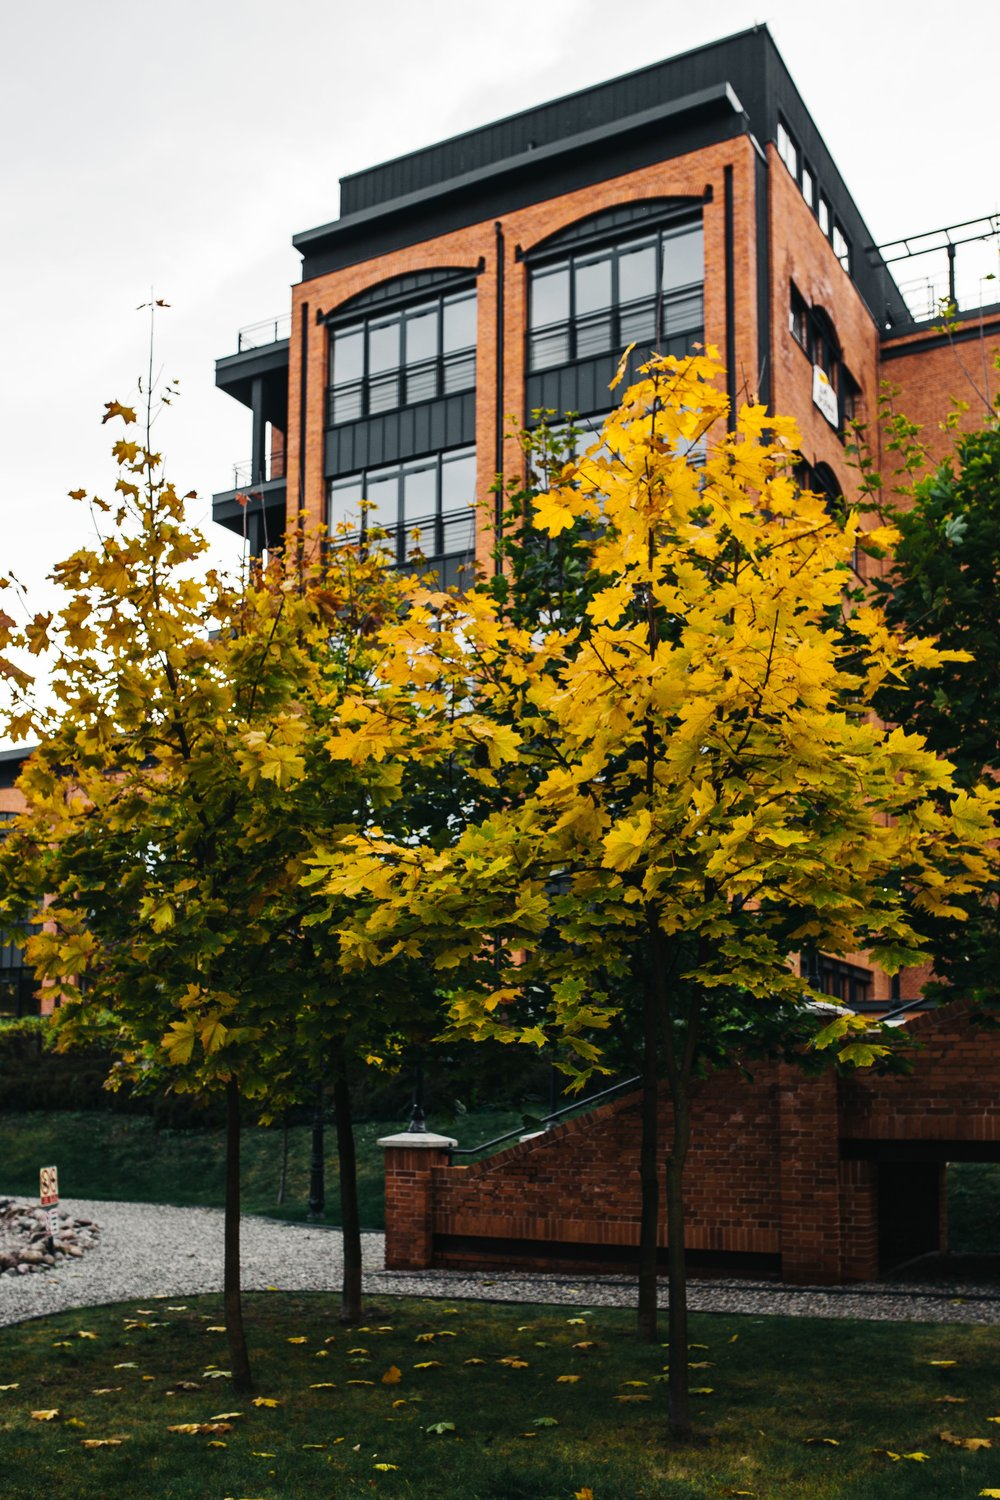 Autumn threes and brick building.jpg